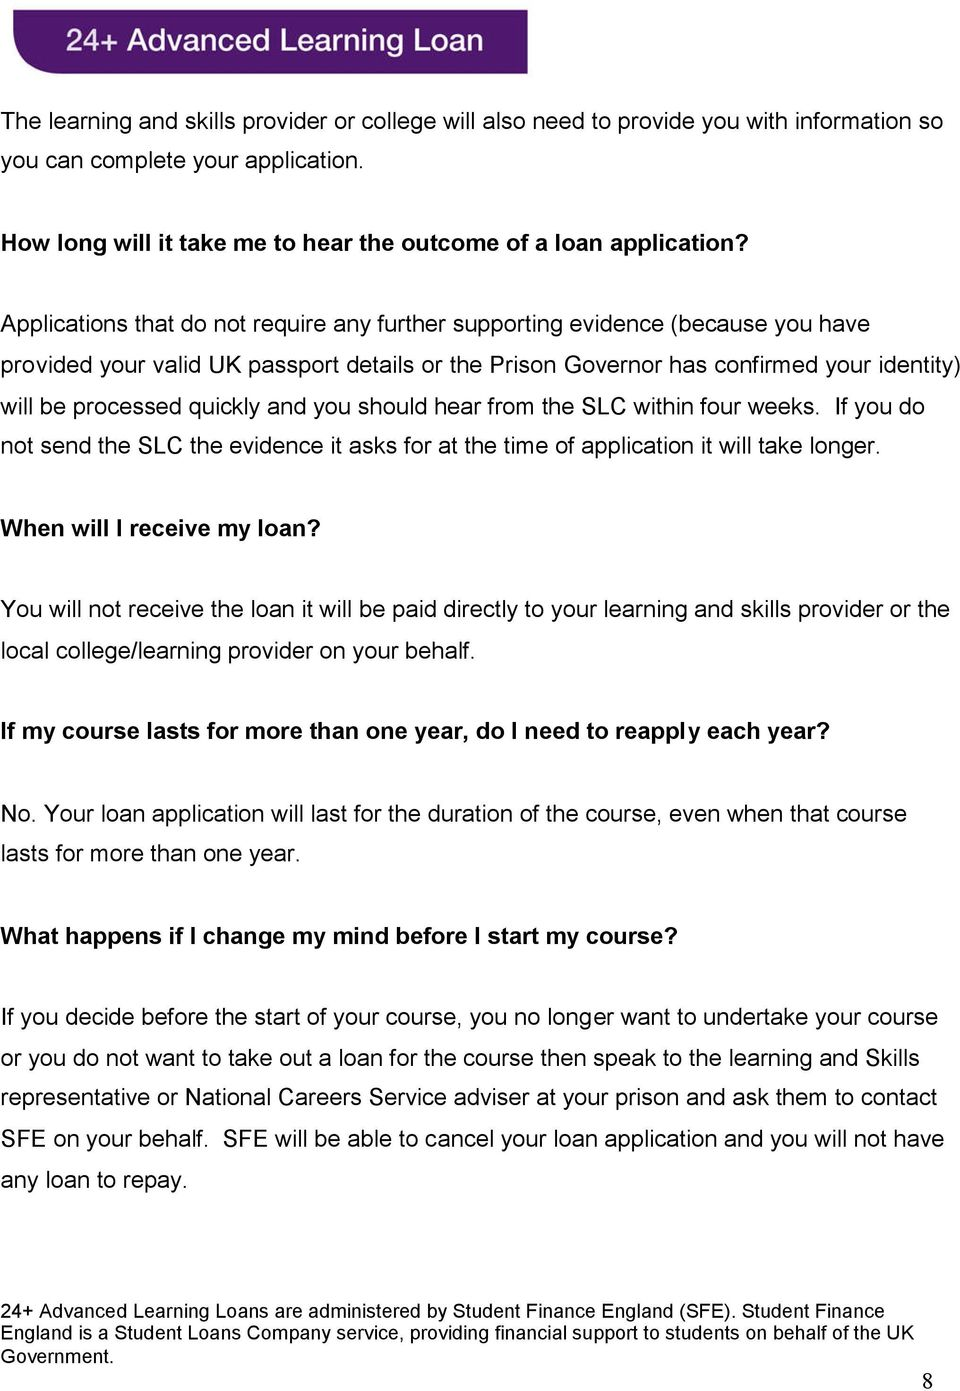 quickly and you should hear from the SLC within four weeks. If you do not send the SLC the evidence it asks for at the time of application it will take longer. When will I receive my loan?